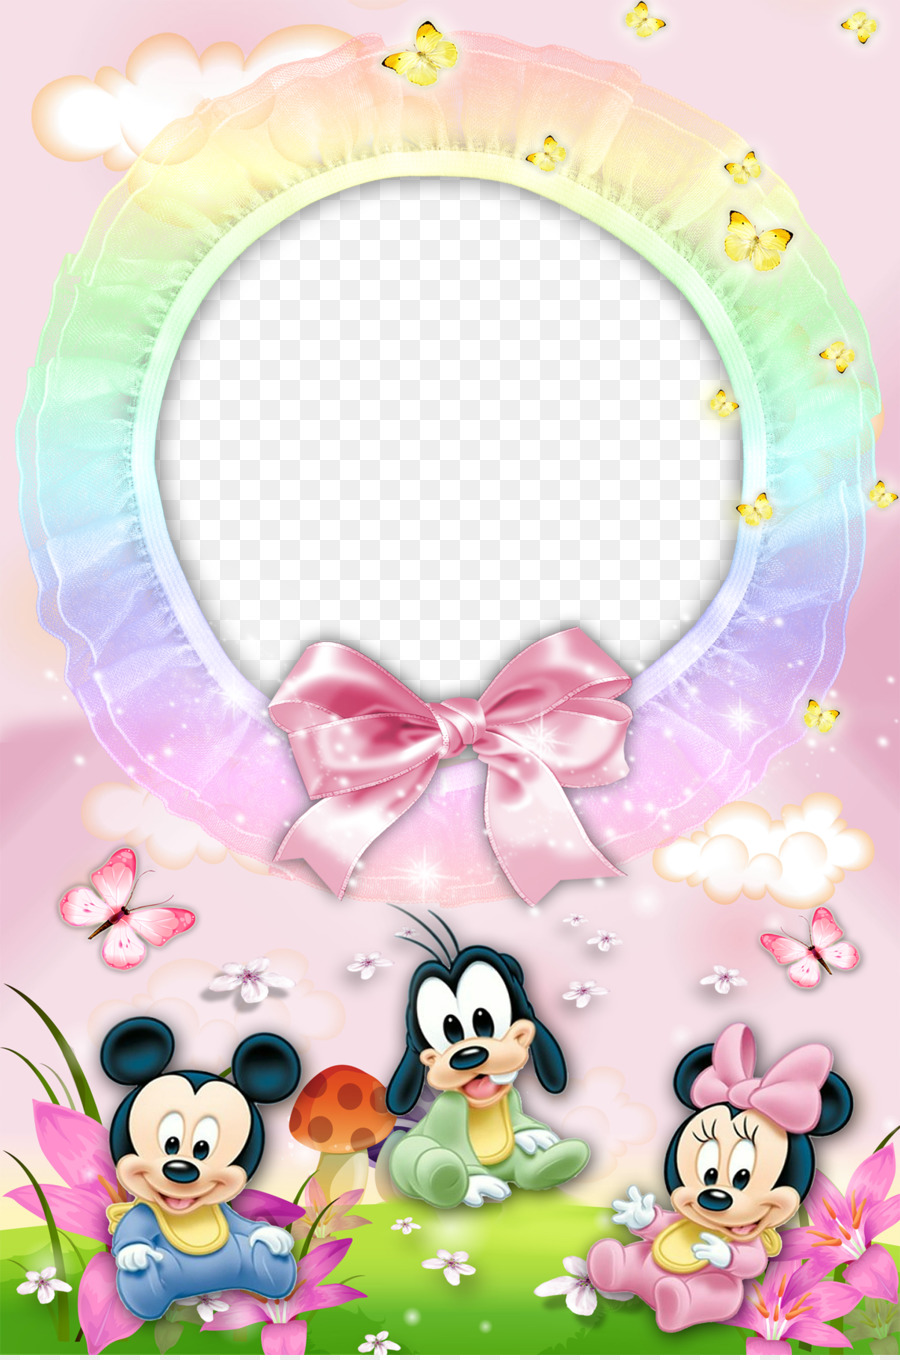 Mickey Mouse Minnie Mouse Donald Duck Pluto Picture frame - Mood ...